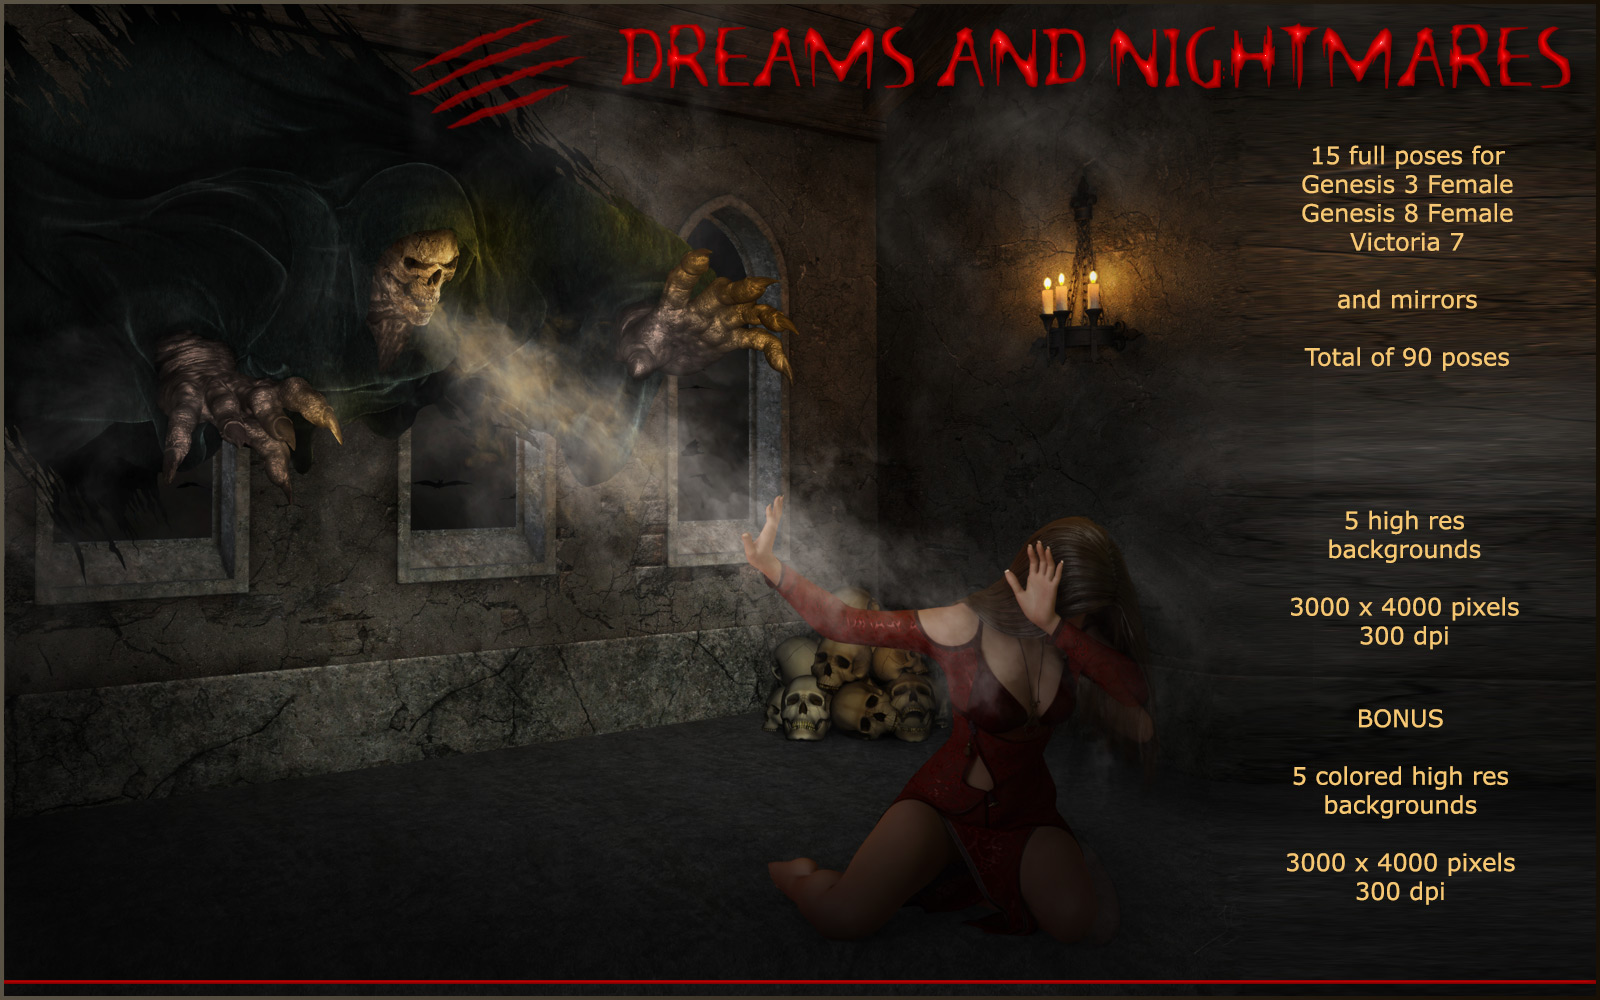 Dreams and Nightmares - Backgrounds and poses for G 3 and 8 F